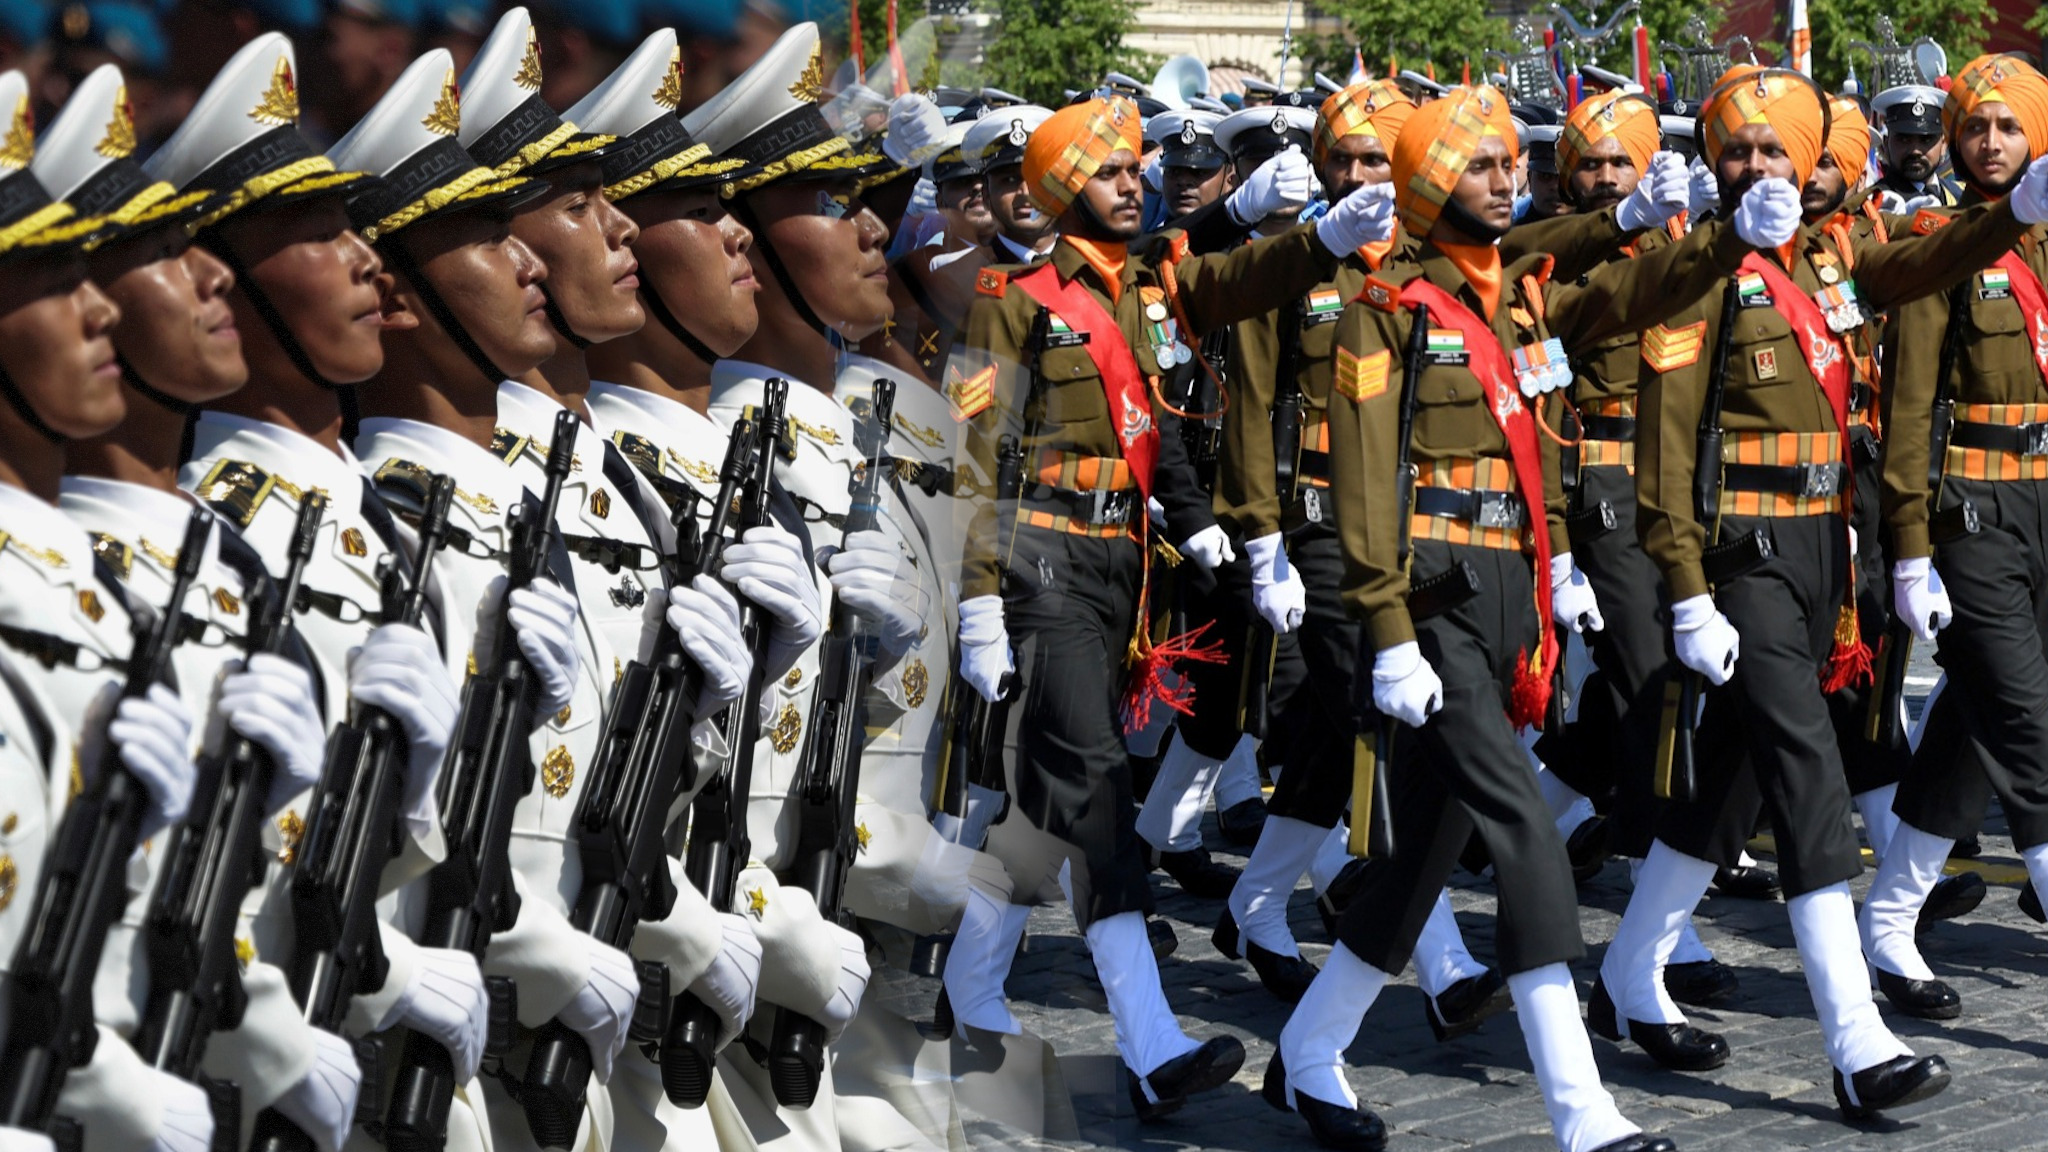 Chinese and Indian troops march in same parade as Putin watches - Nikkei  Asian Review